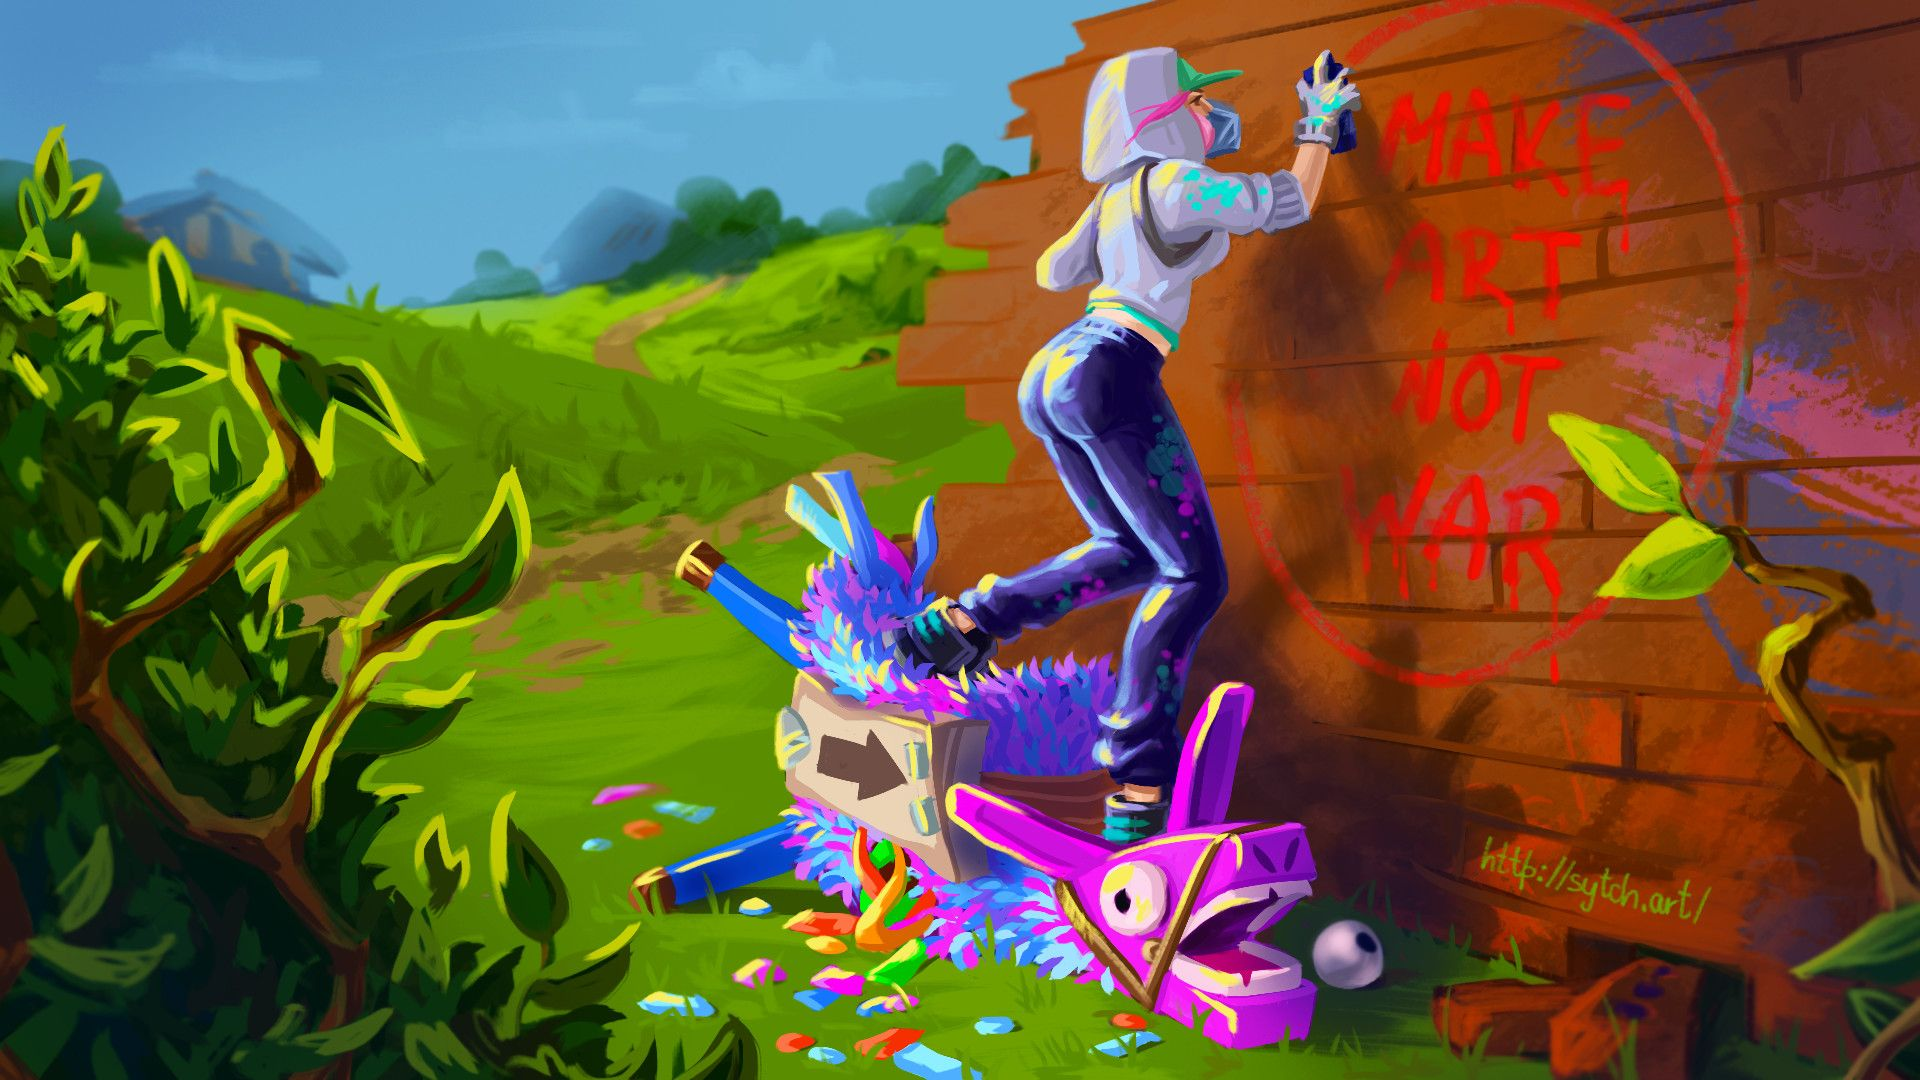 Llama spotted fortnite wallpapers top free llama spotted - Fortnite llama background ...